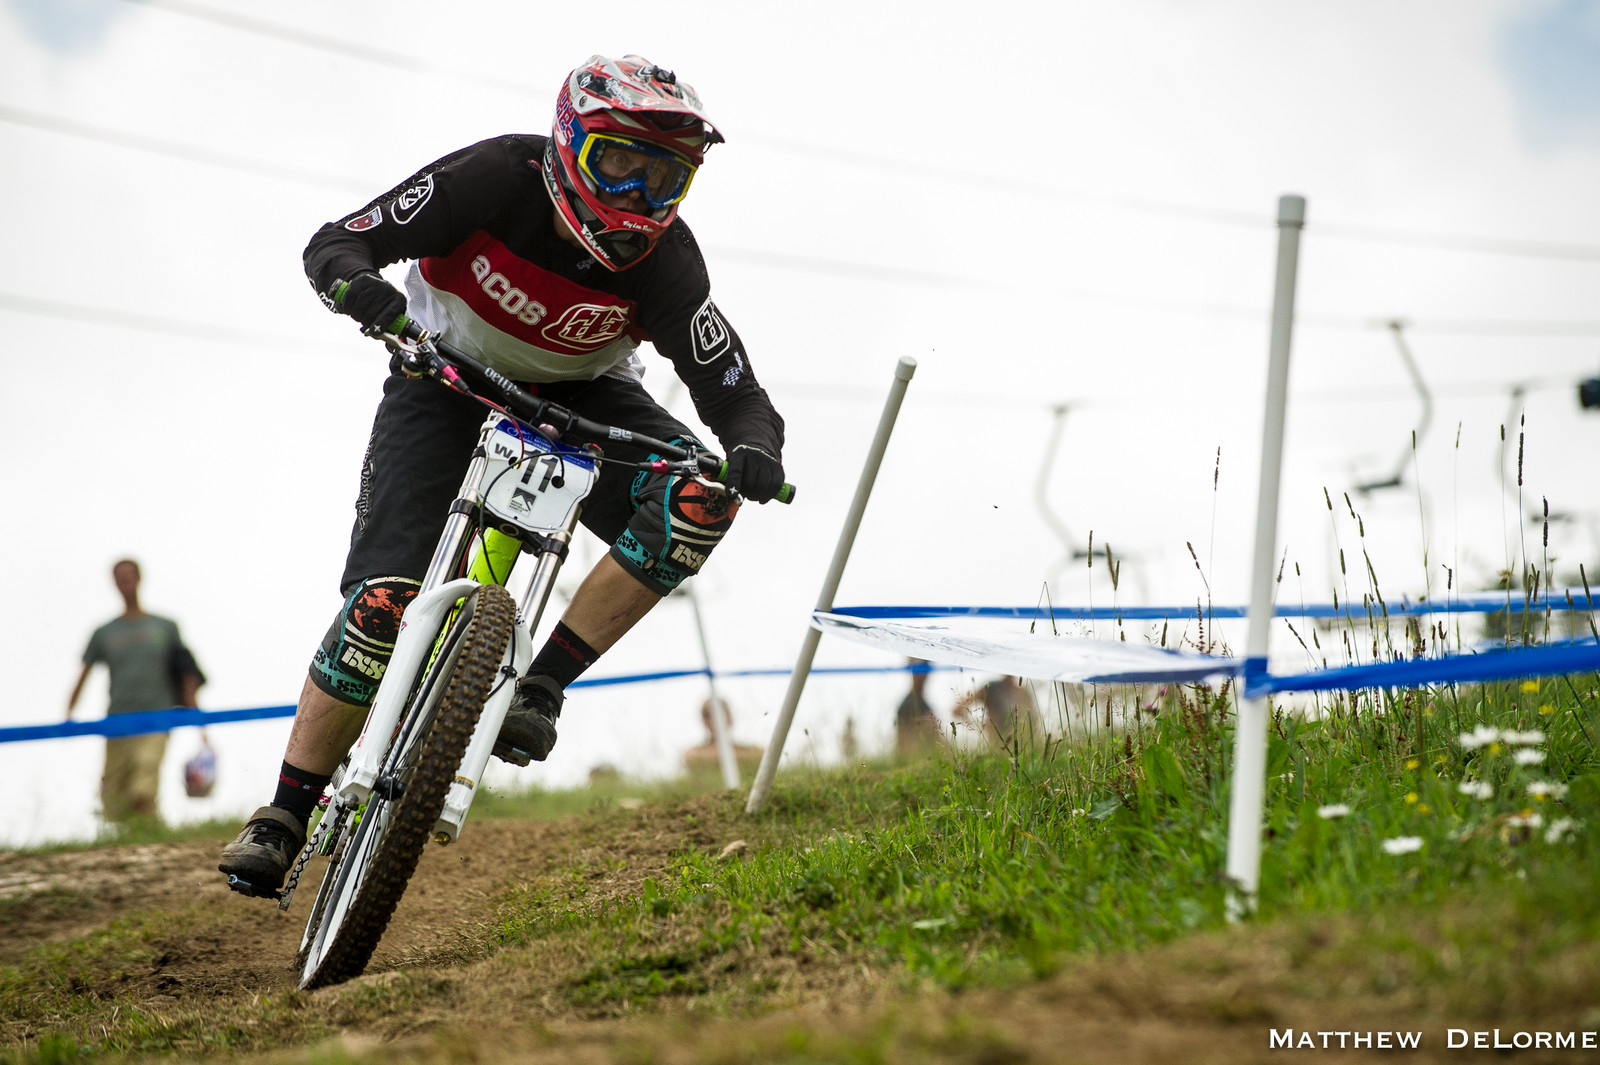 Jackie Harmony, 1st Place Pro Women's Qualifier at U.S. National Champs - U.S National Championship Dual Slalom Finals and DH Qualifying - Mountain Biking Pictures - Vital MTB